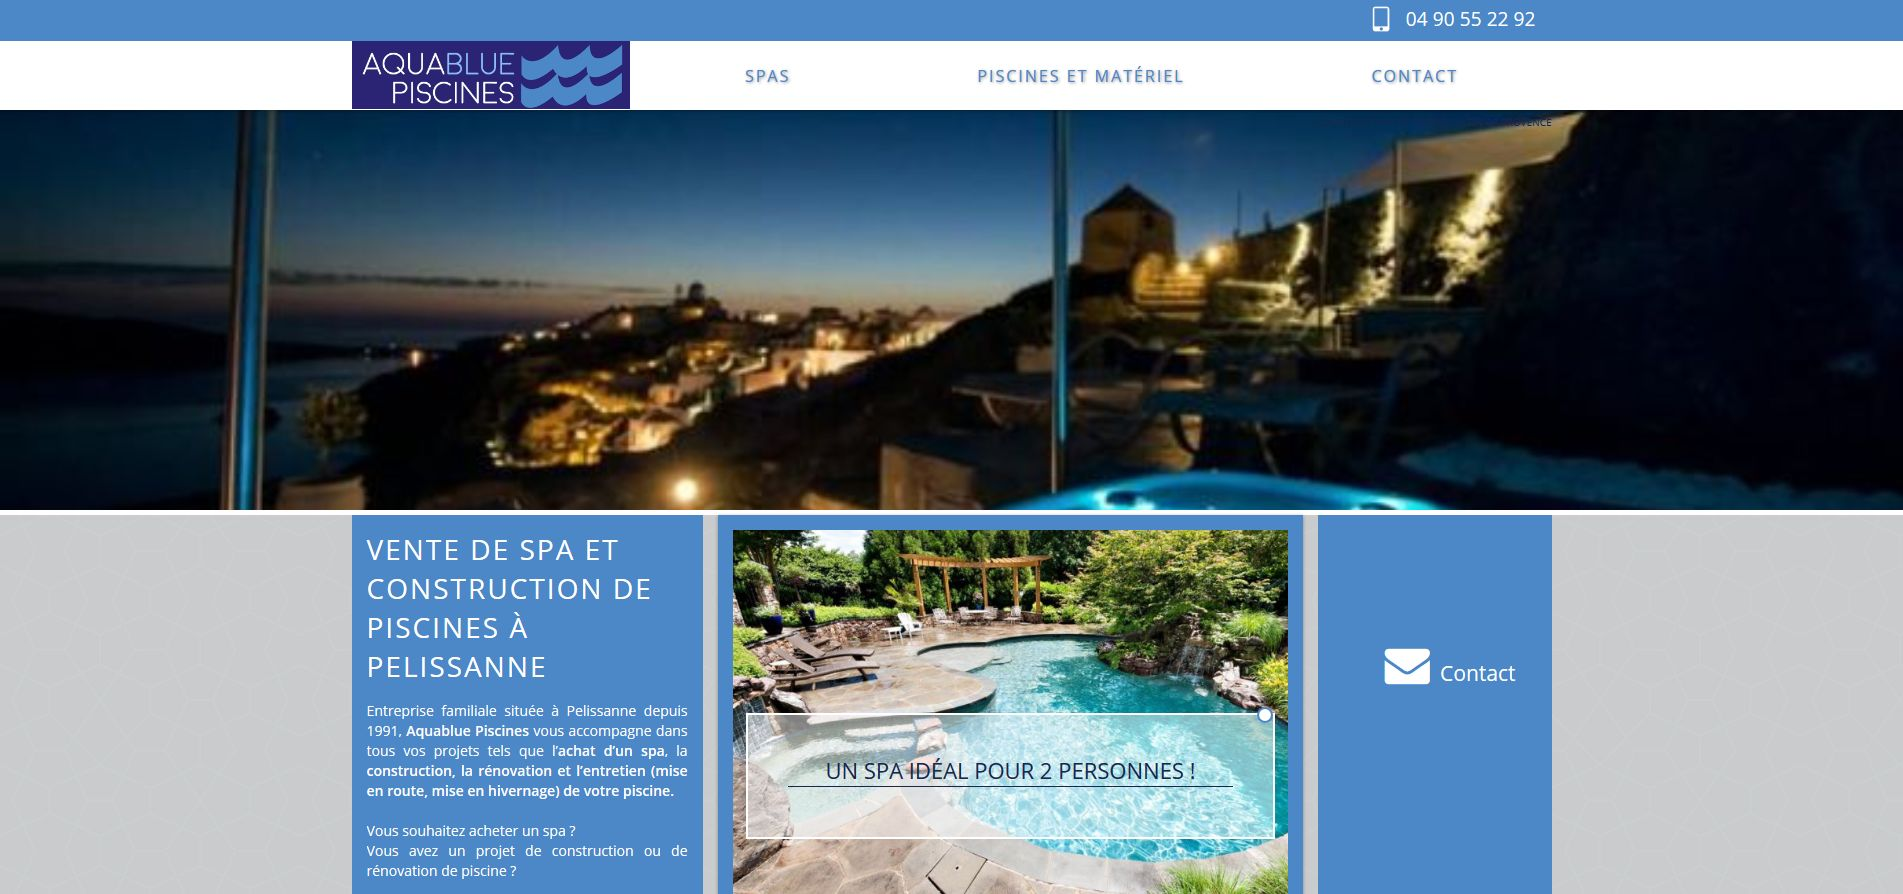 vente de spas salon de provence aquablue piscines